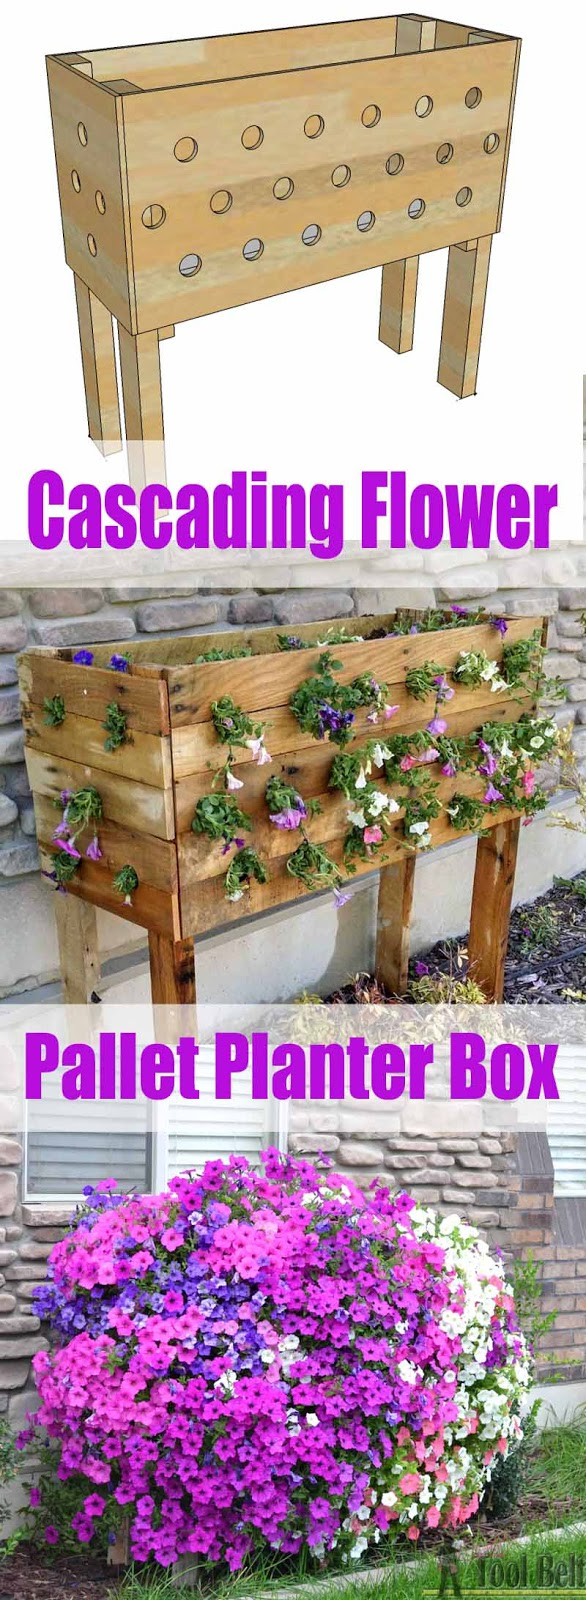 Build a simple planter box out of pallets and enjoy the blooms all summer long.